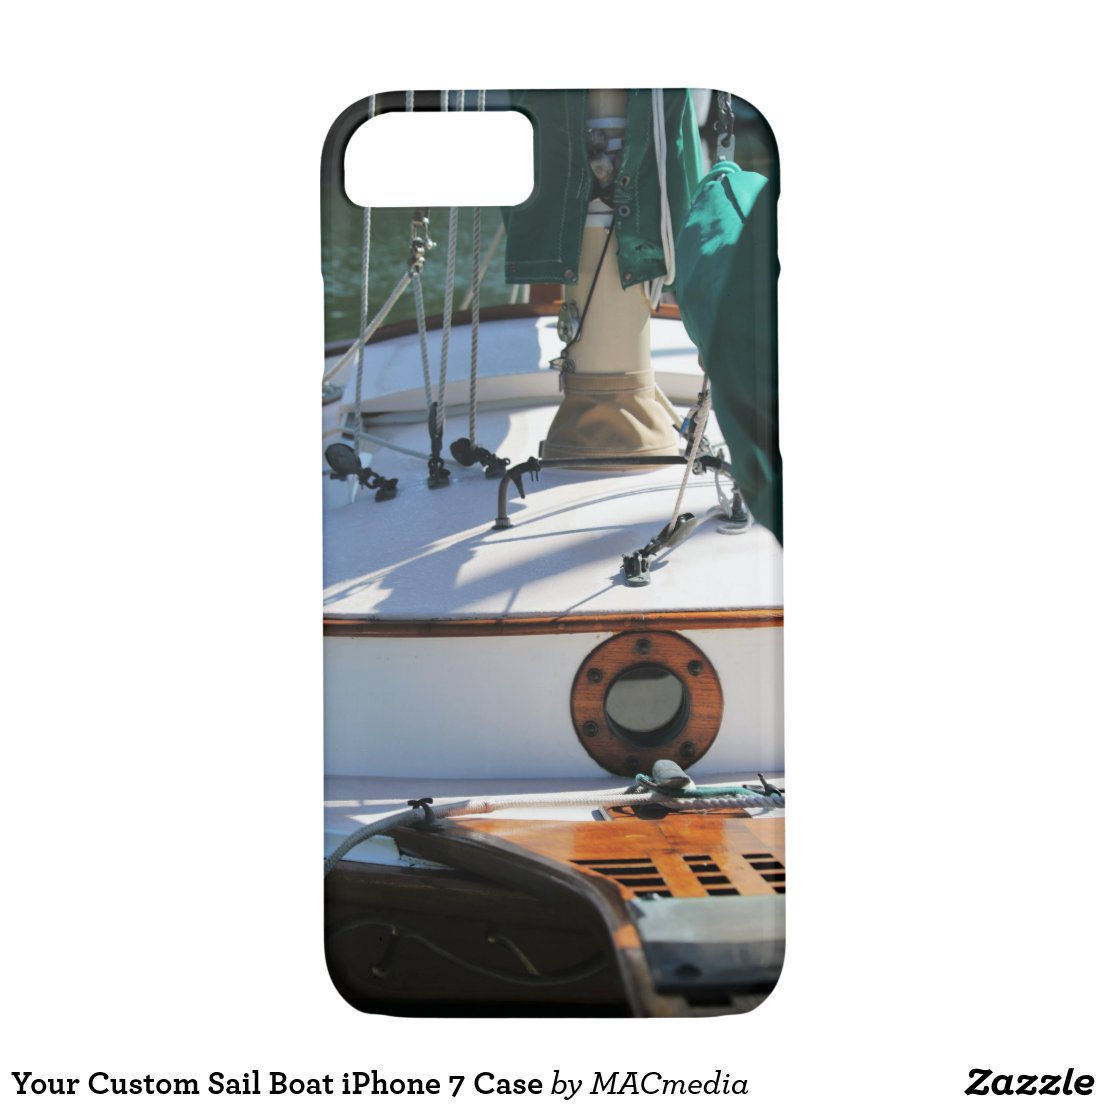 Your Custom Sail Boat iPhone 7 Case